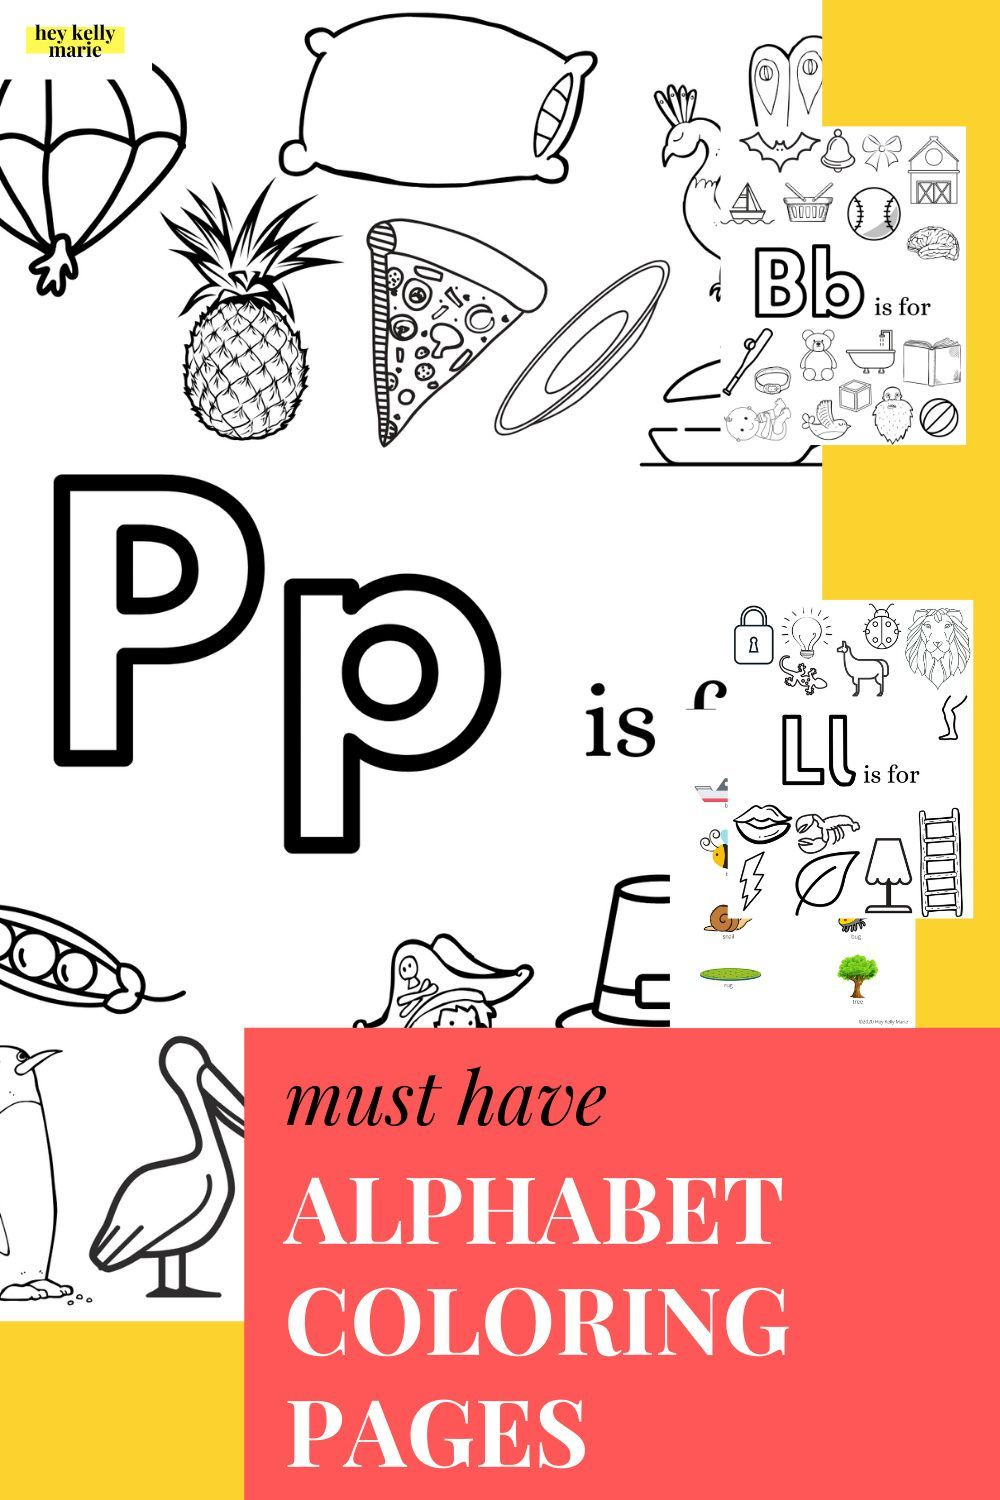 Free Printable A Z Alphabet Coloring Pages Hey Kelly Marie Alphabet Coloring Pages Coloring Pages Alphabet Coloring